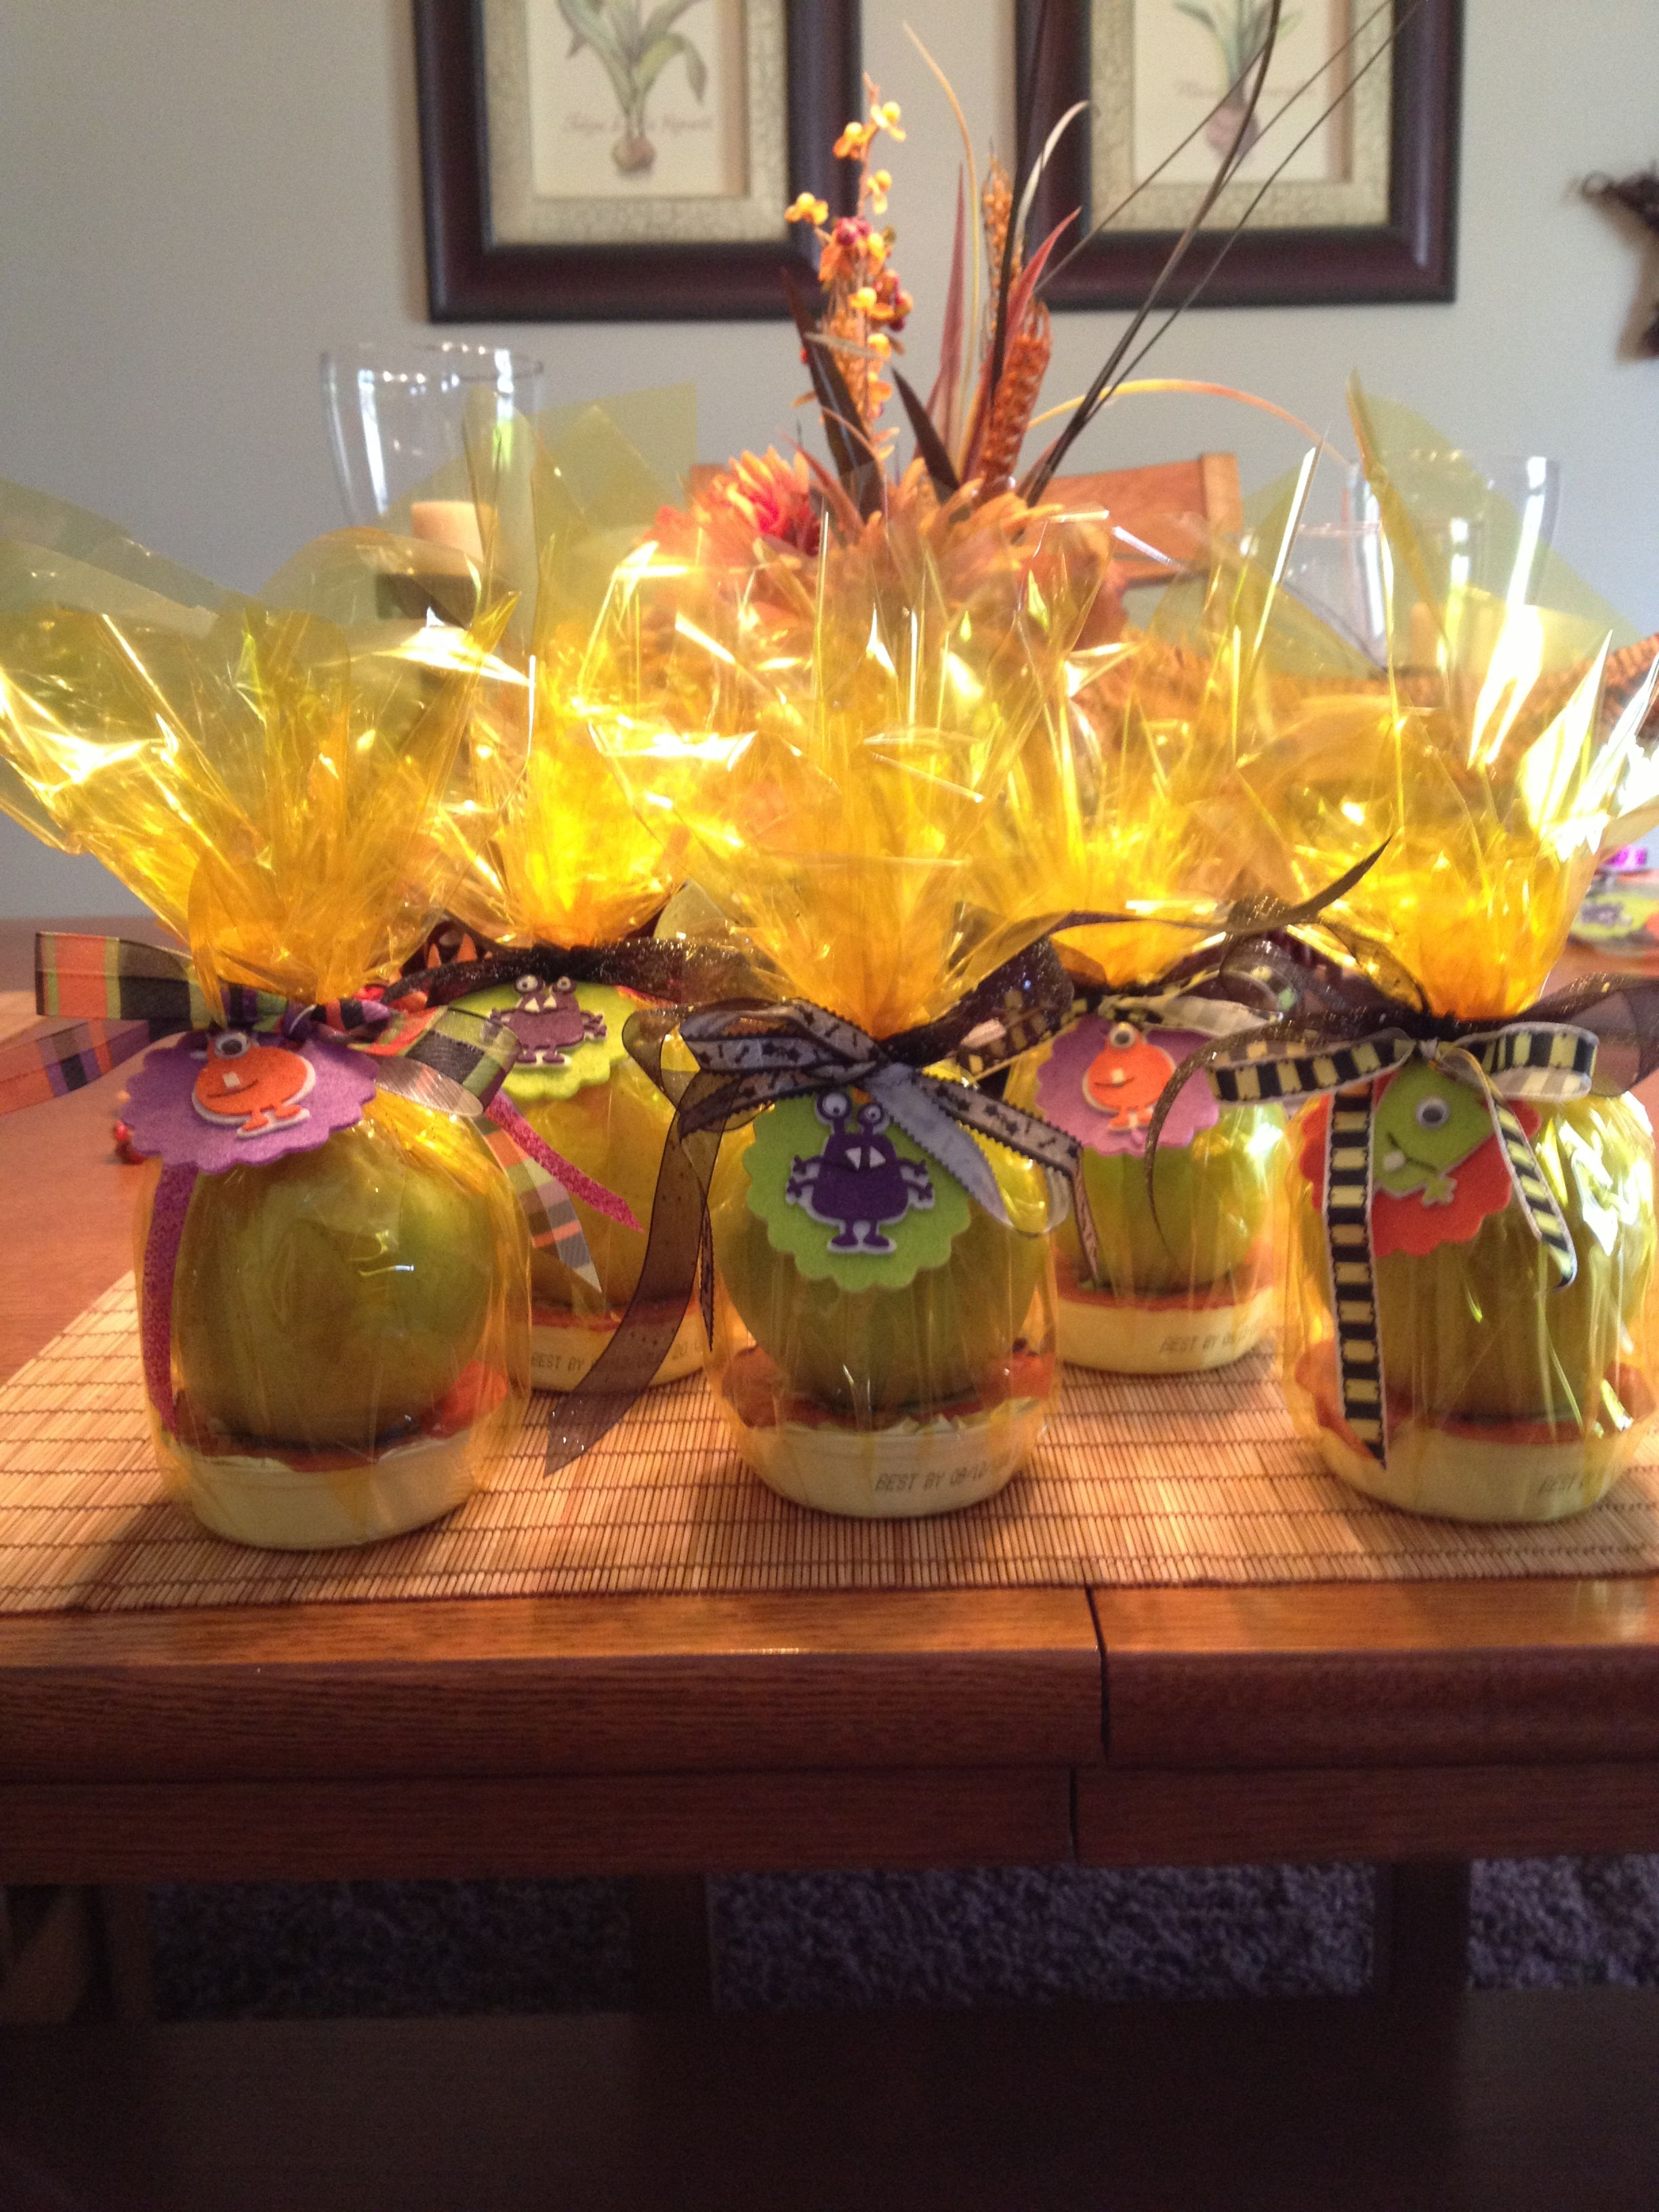 Apples with caramel dipgreat gift idea for teachers